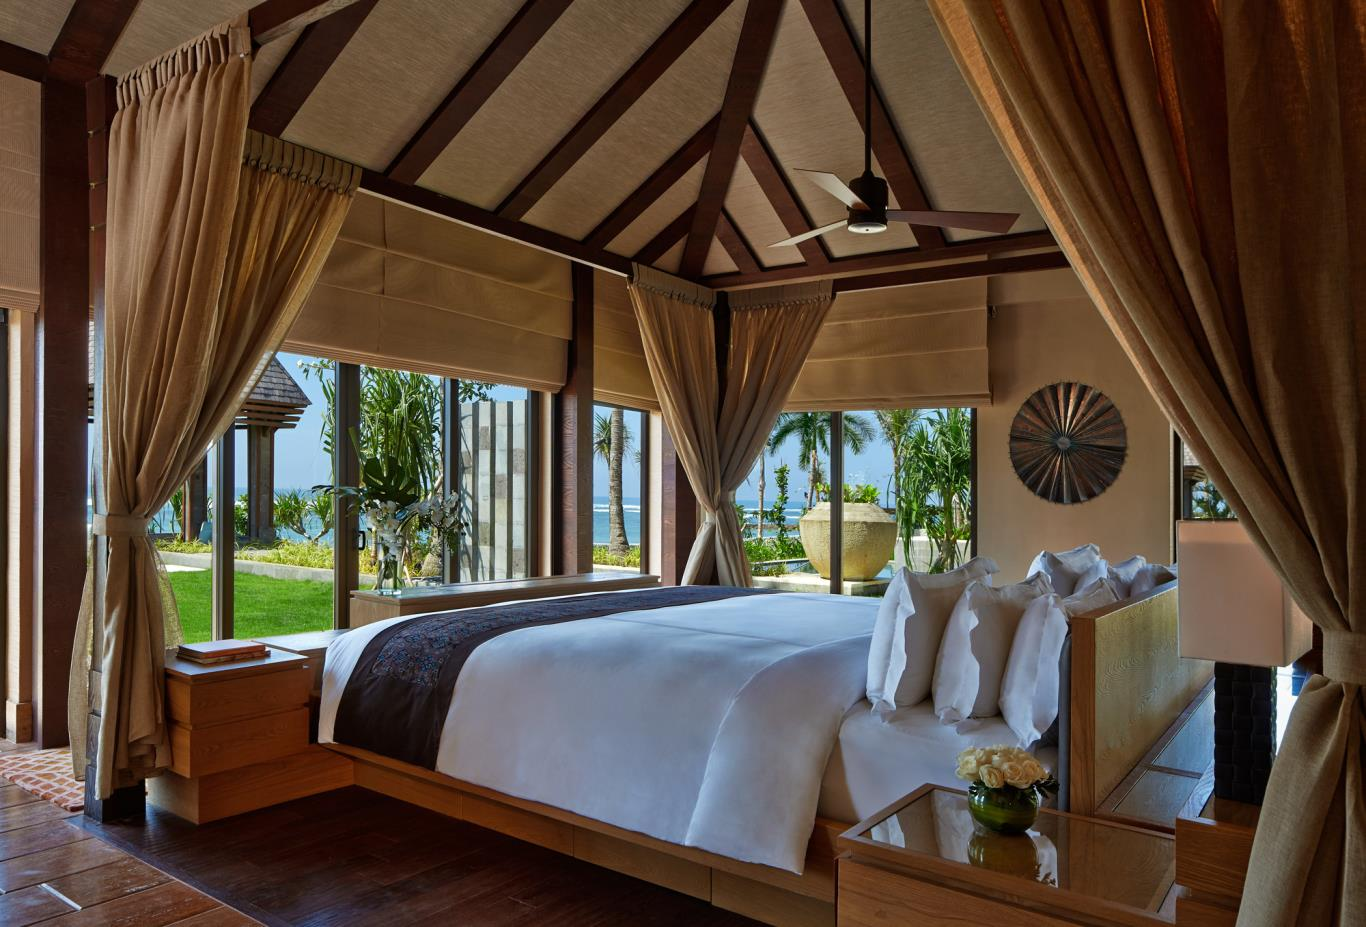 Oceantfront Villa Bedroom